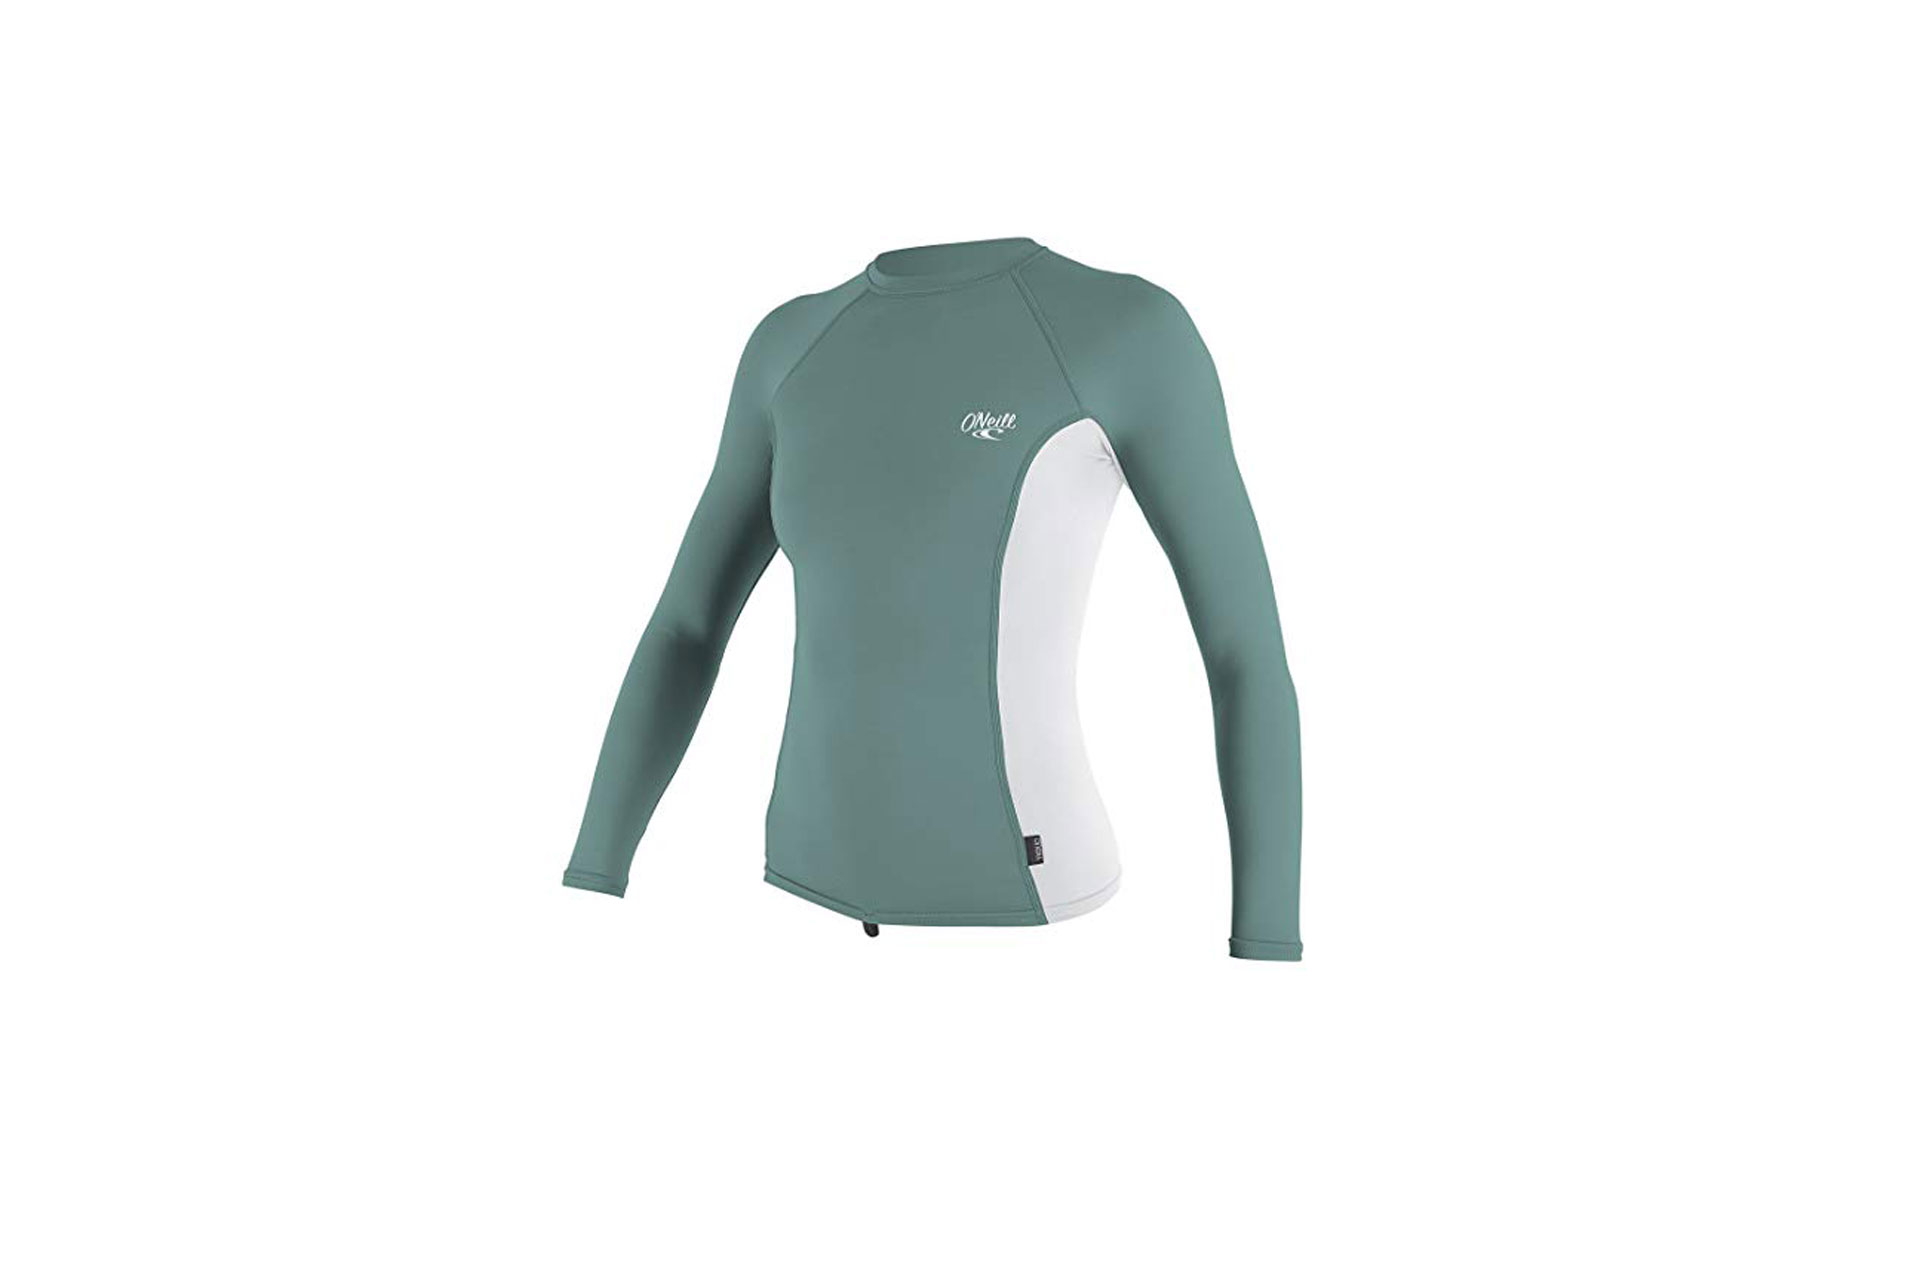 Women's Rash Guard; Courtesy of Amazon